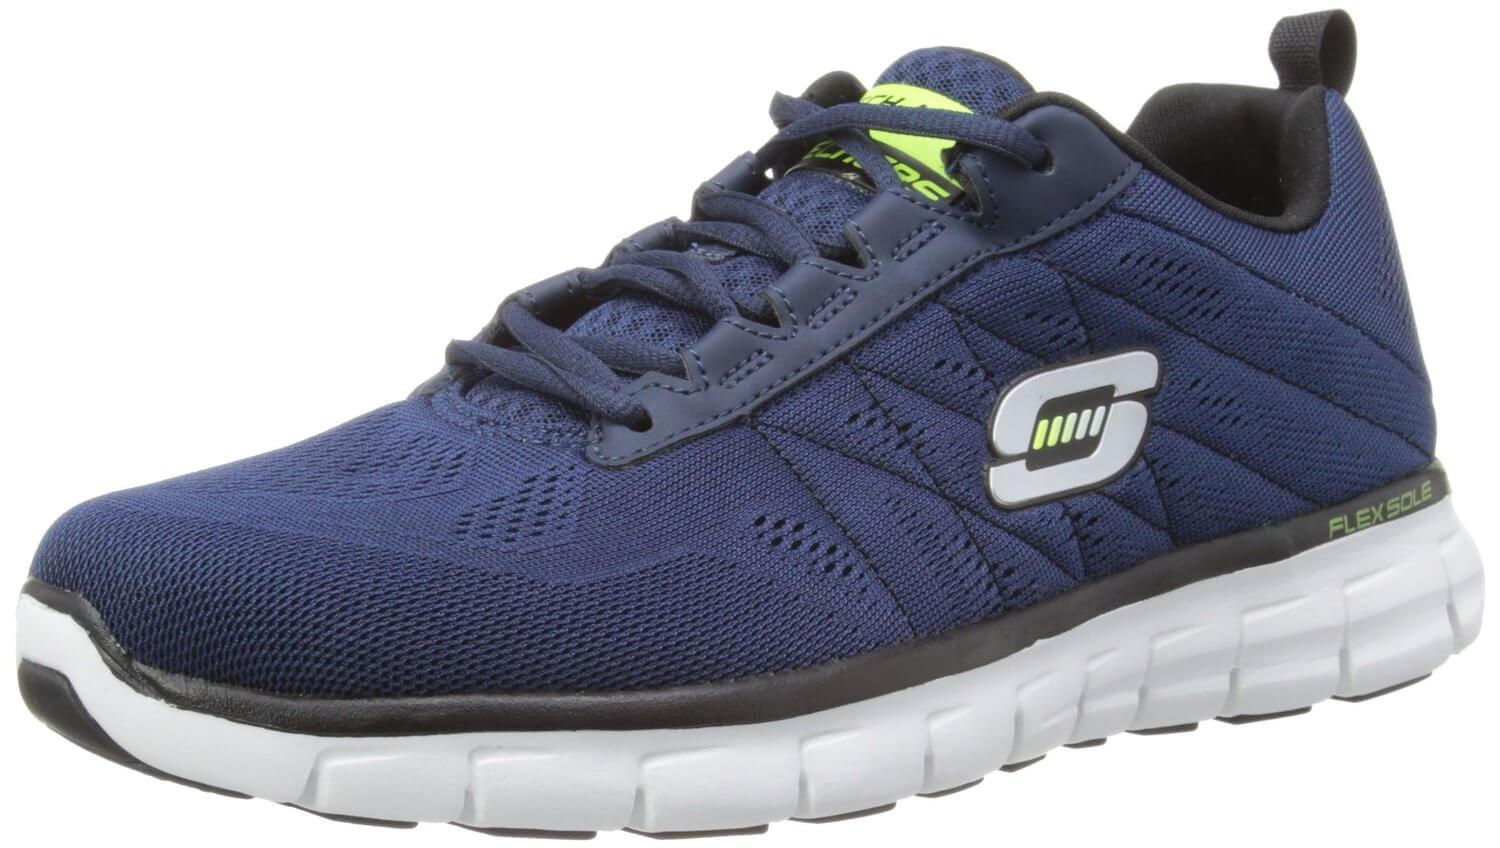 e40b842bdf53 Skechers Synergy Power Switch - Buy or Not in Apr 2019